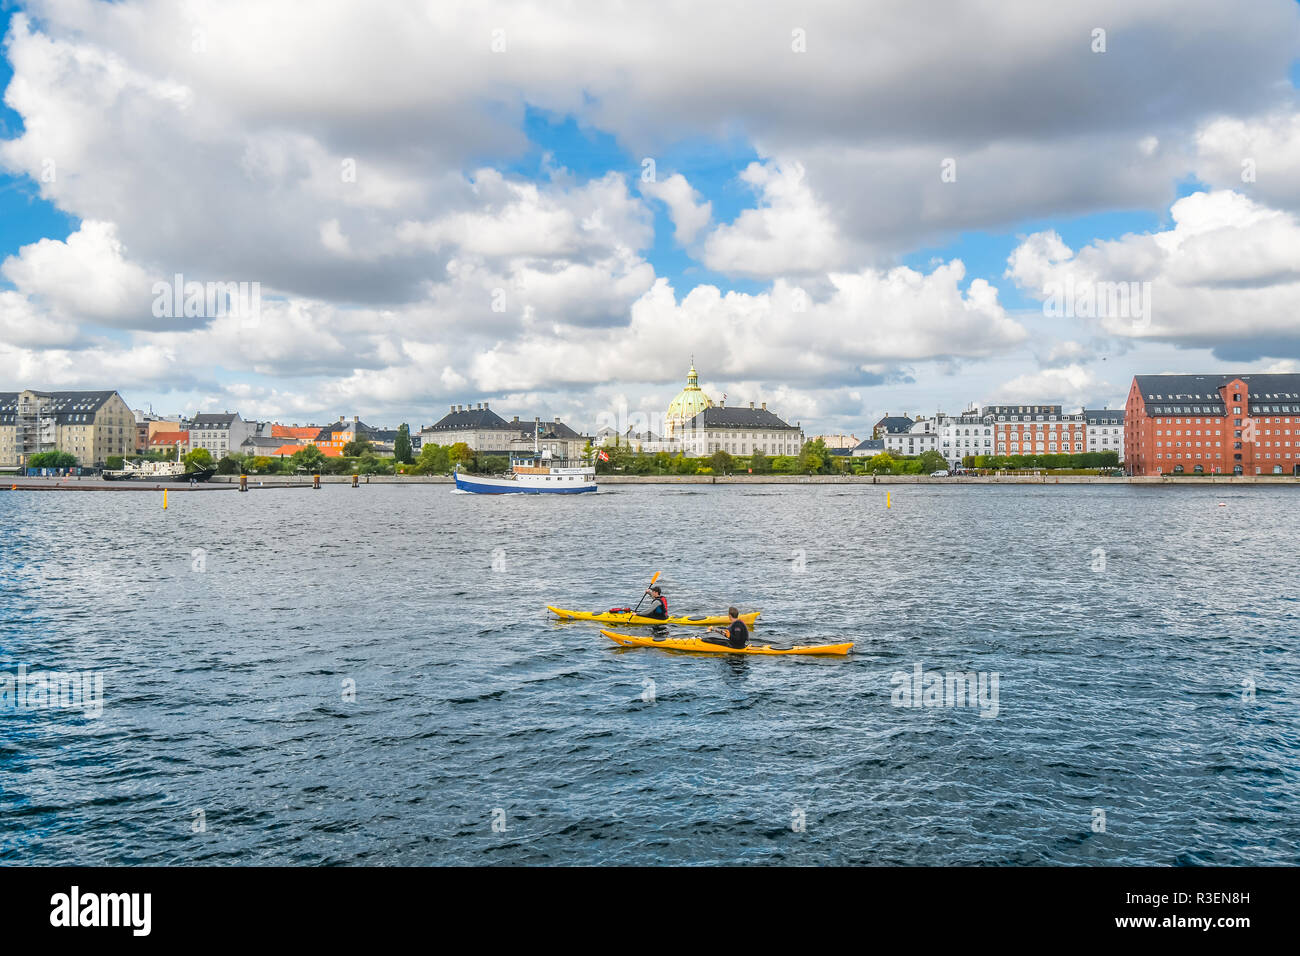 The dome of Frederik's Church, also known as the Marble Church rises above the city of Copenhagen as two kayakers float along a Danish canal. - Stock Image